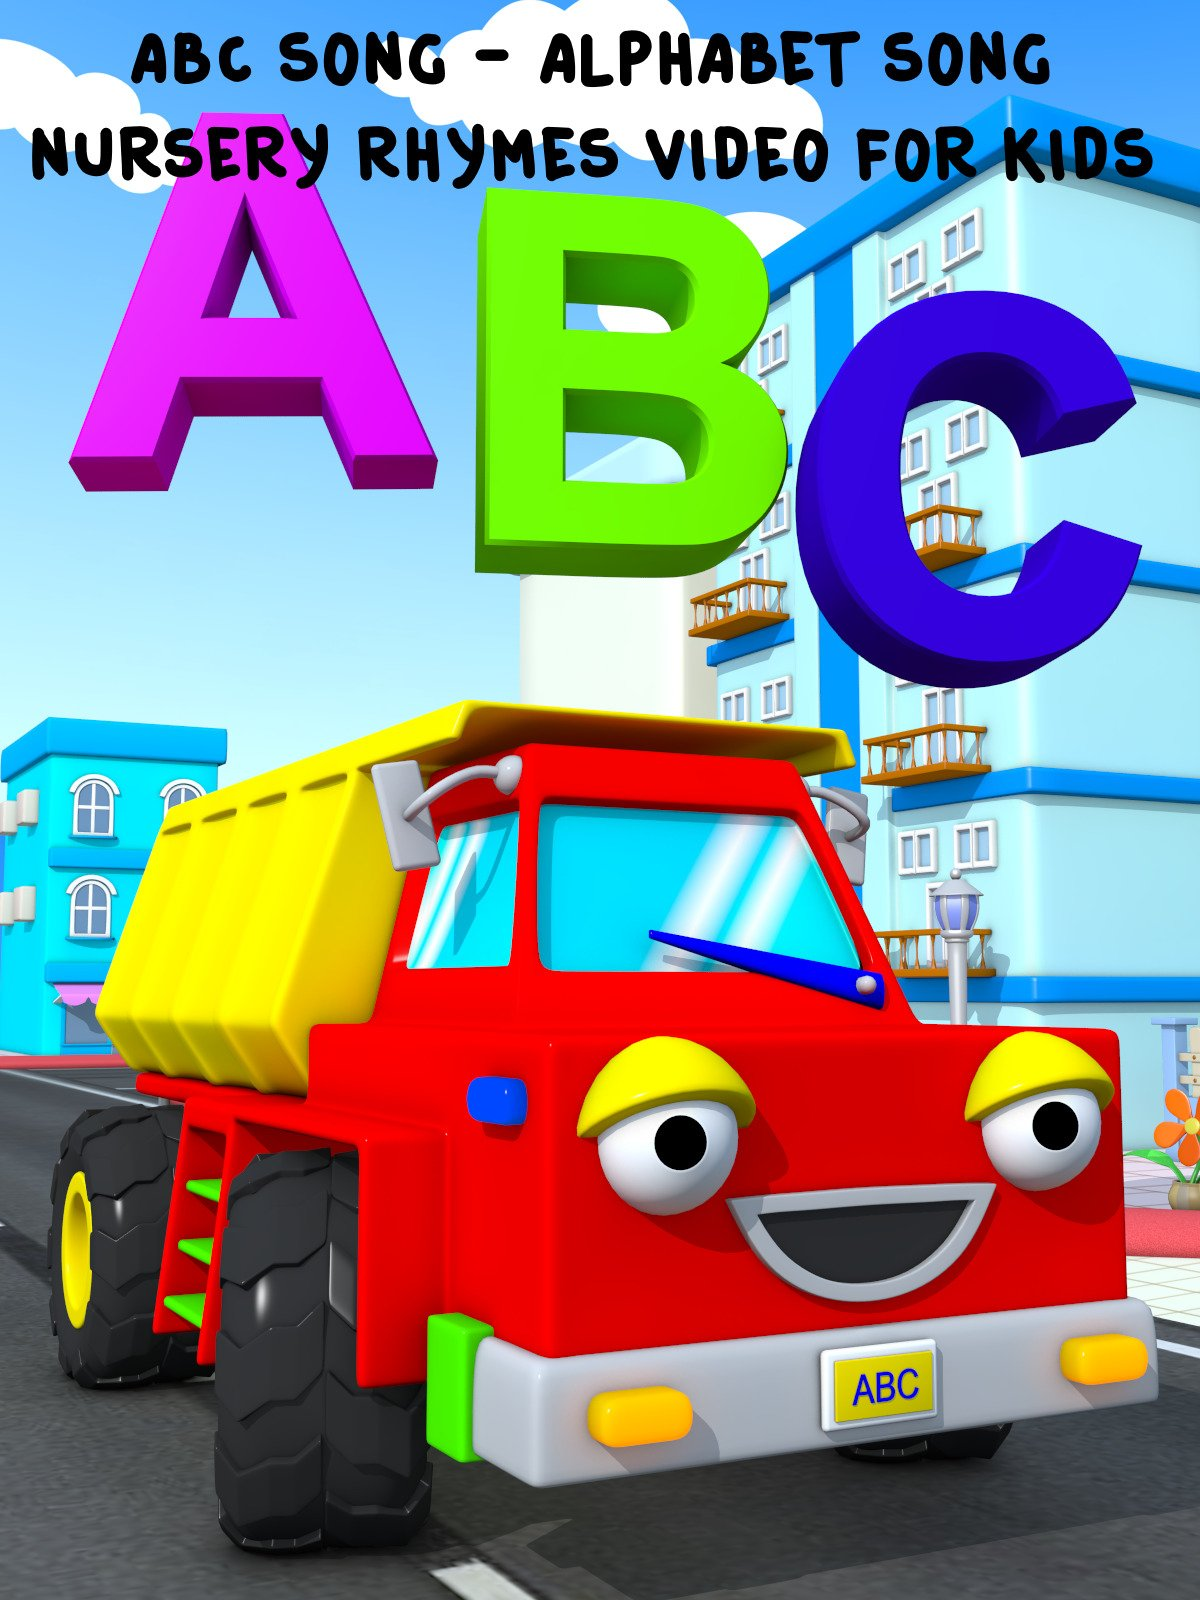 Amazon ABC Song Alphabet Song Nursery Rhymes Video for